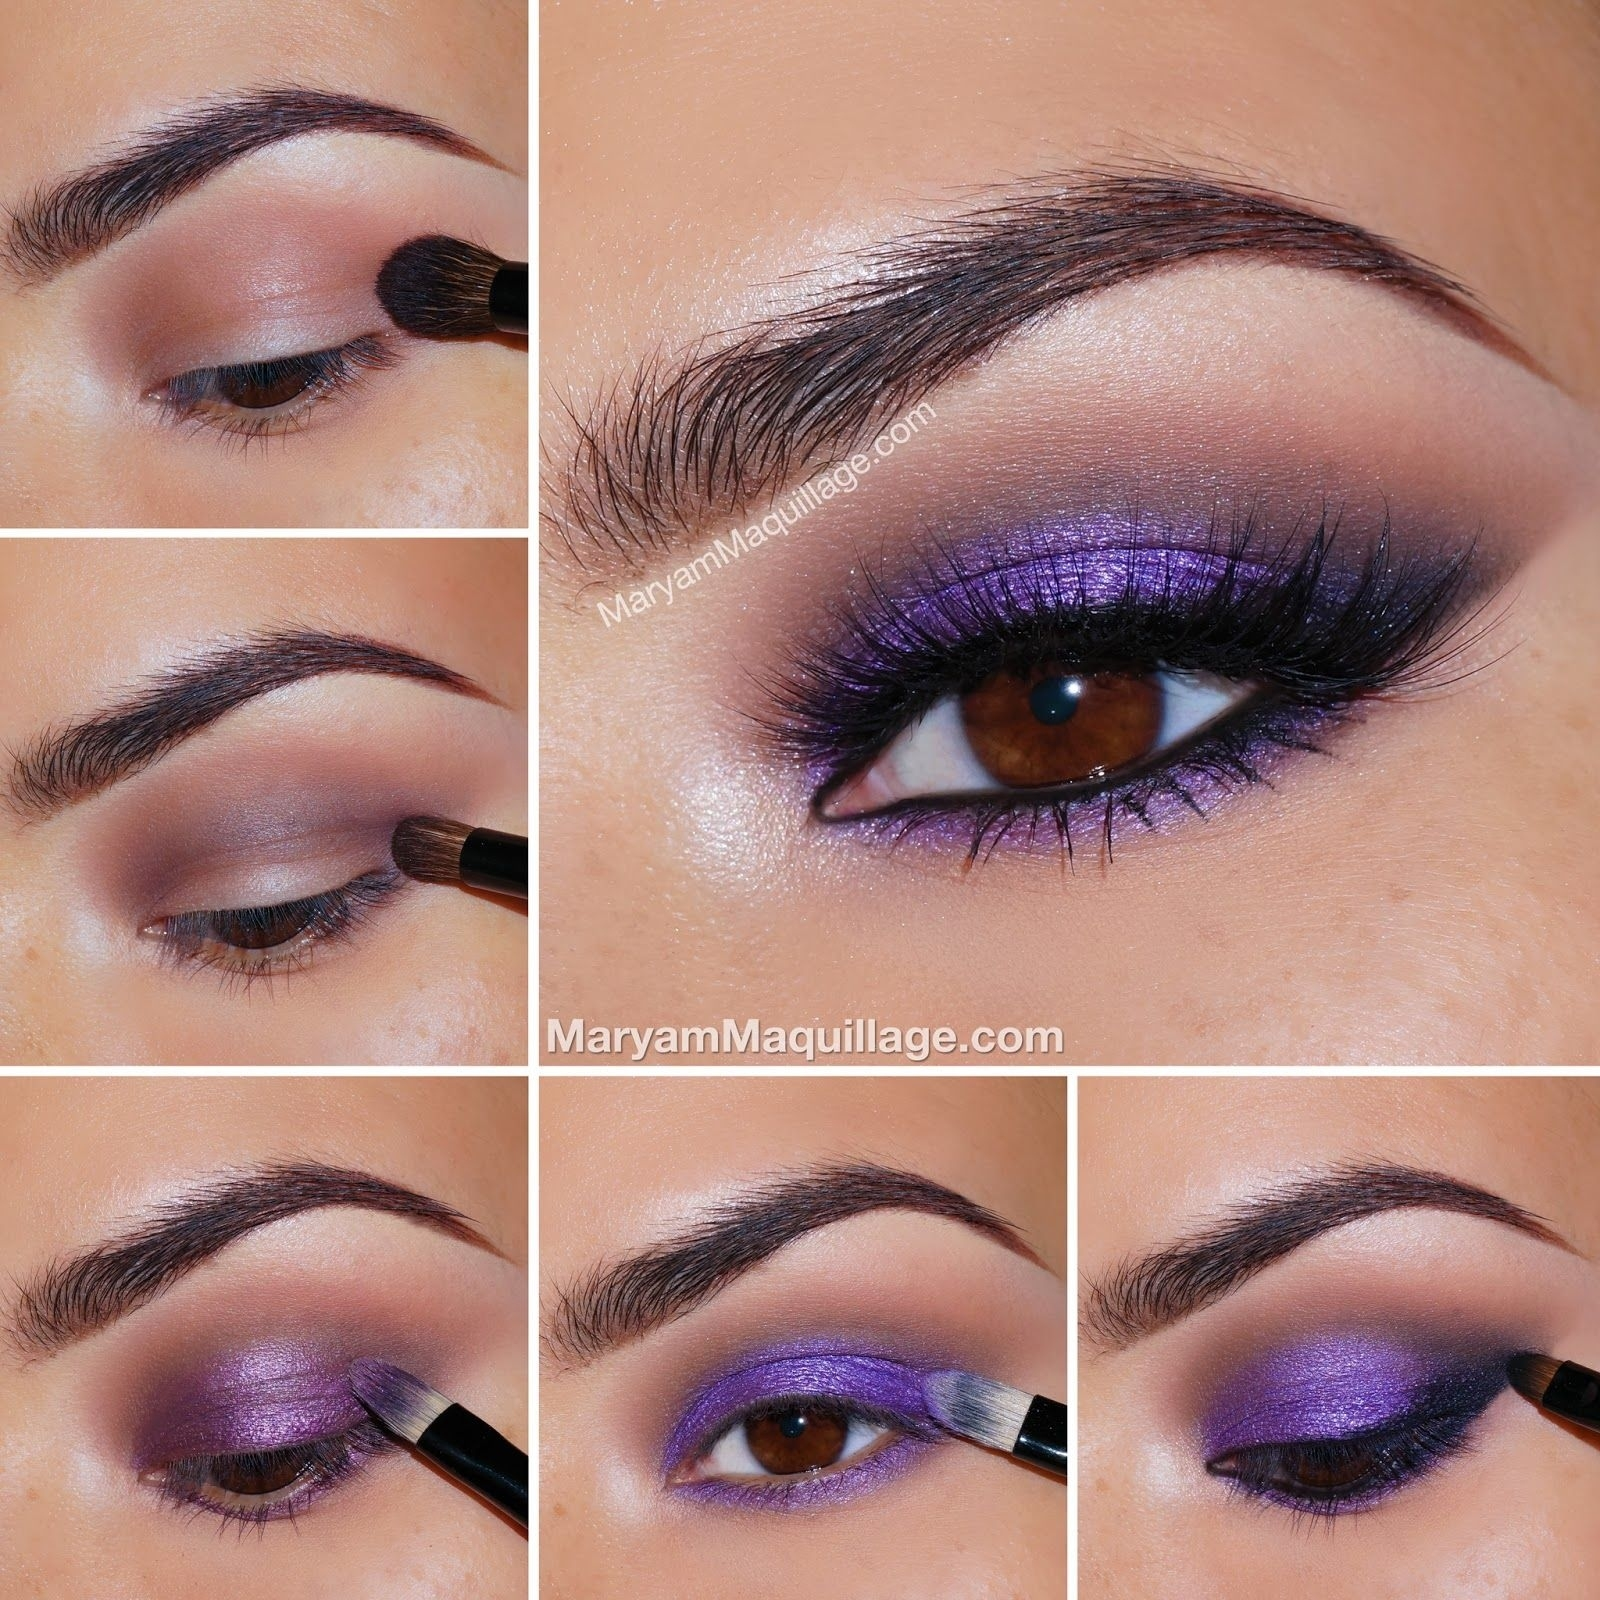 Brown Eyes Can Support A Range Of Bold Colors. Don't Be Afraid To inside Eye Makeup Ideas For Dark Brown Eyes Step By Step